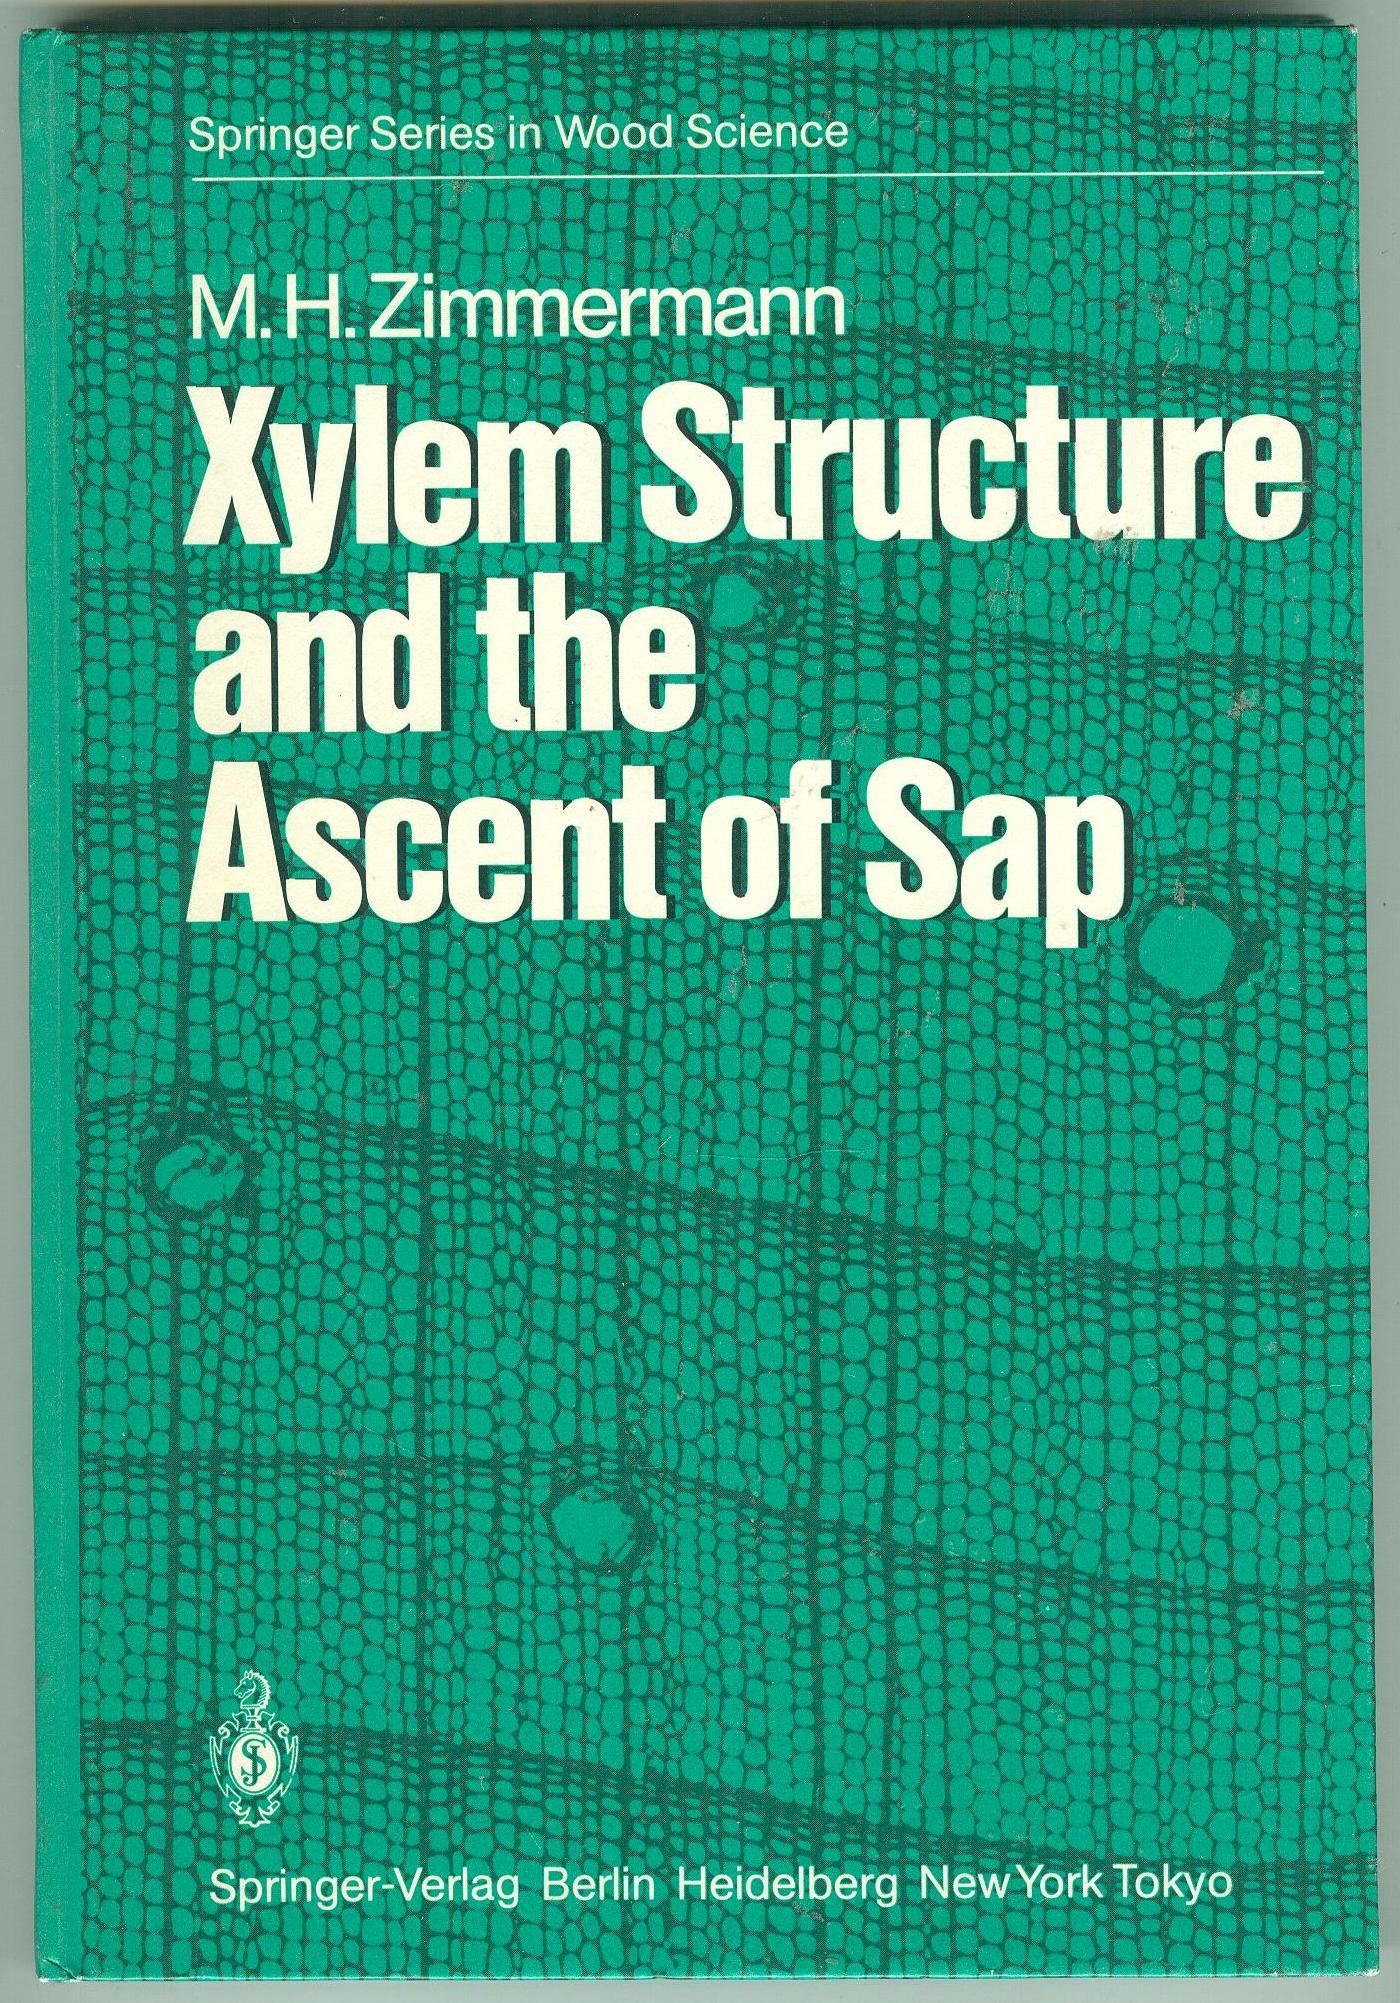 Buy Xylem Structure and the Ascent of Sap Book Online at Low Prices in  India | Xylem Structure and the Ascent of Sap Reviews & Ratings - Amazon.in